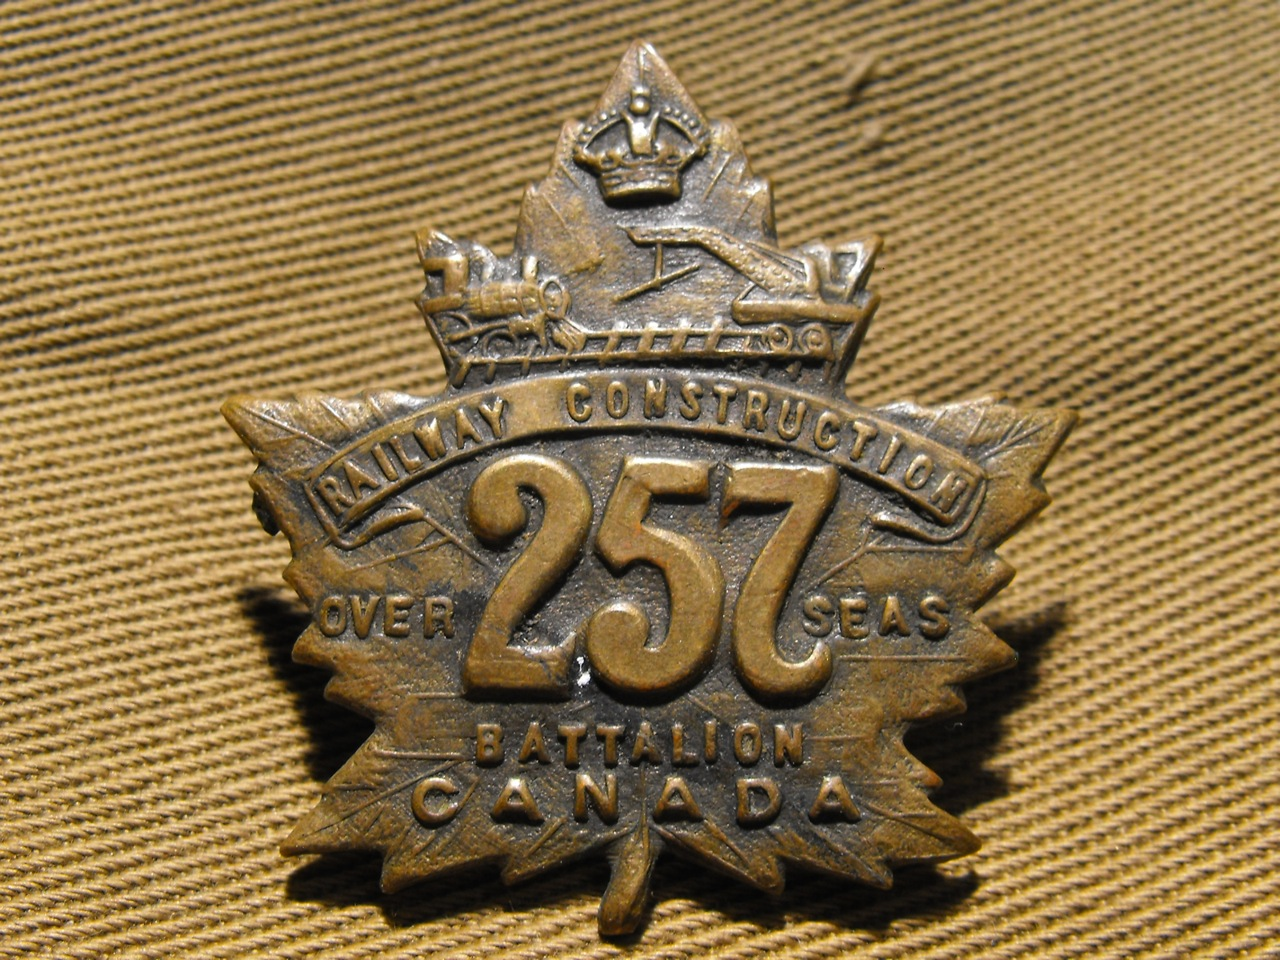 257th (Railway Construction) Bn. Cap Badge